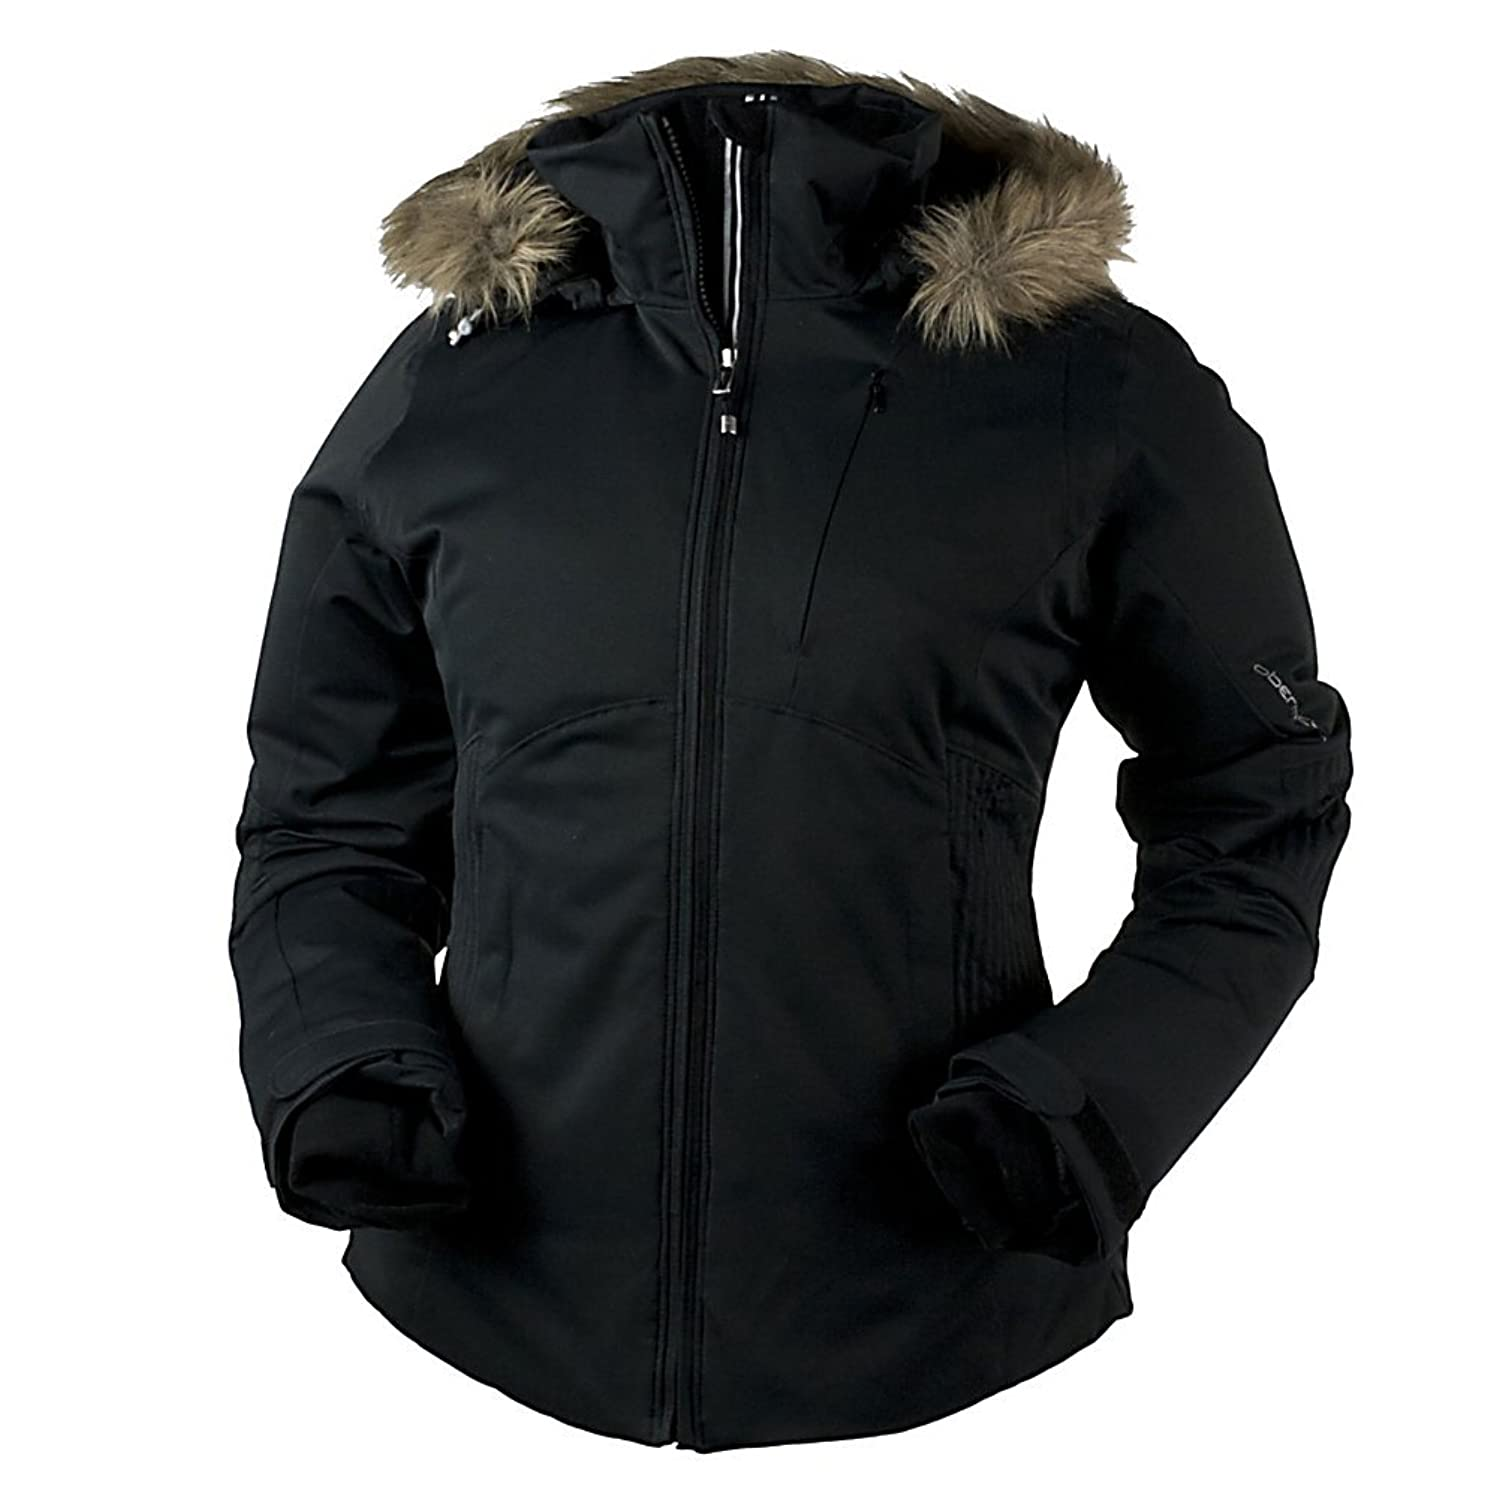 premium selection 2a1b6 83948 women's parajumpers right hand sale - 68% Off ebay price ...